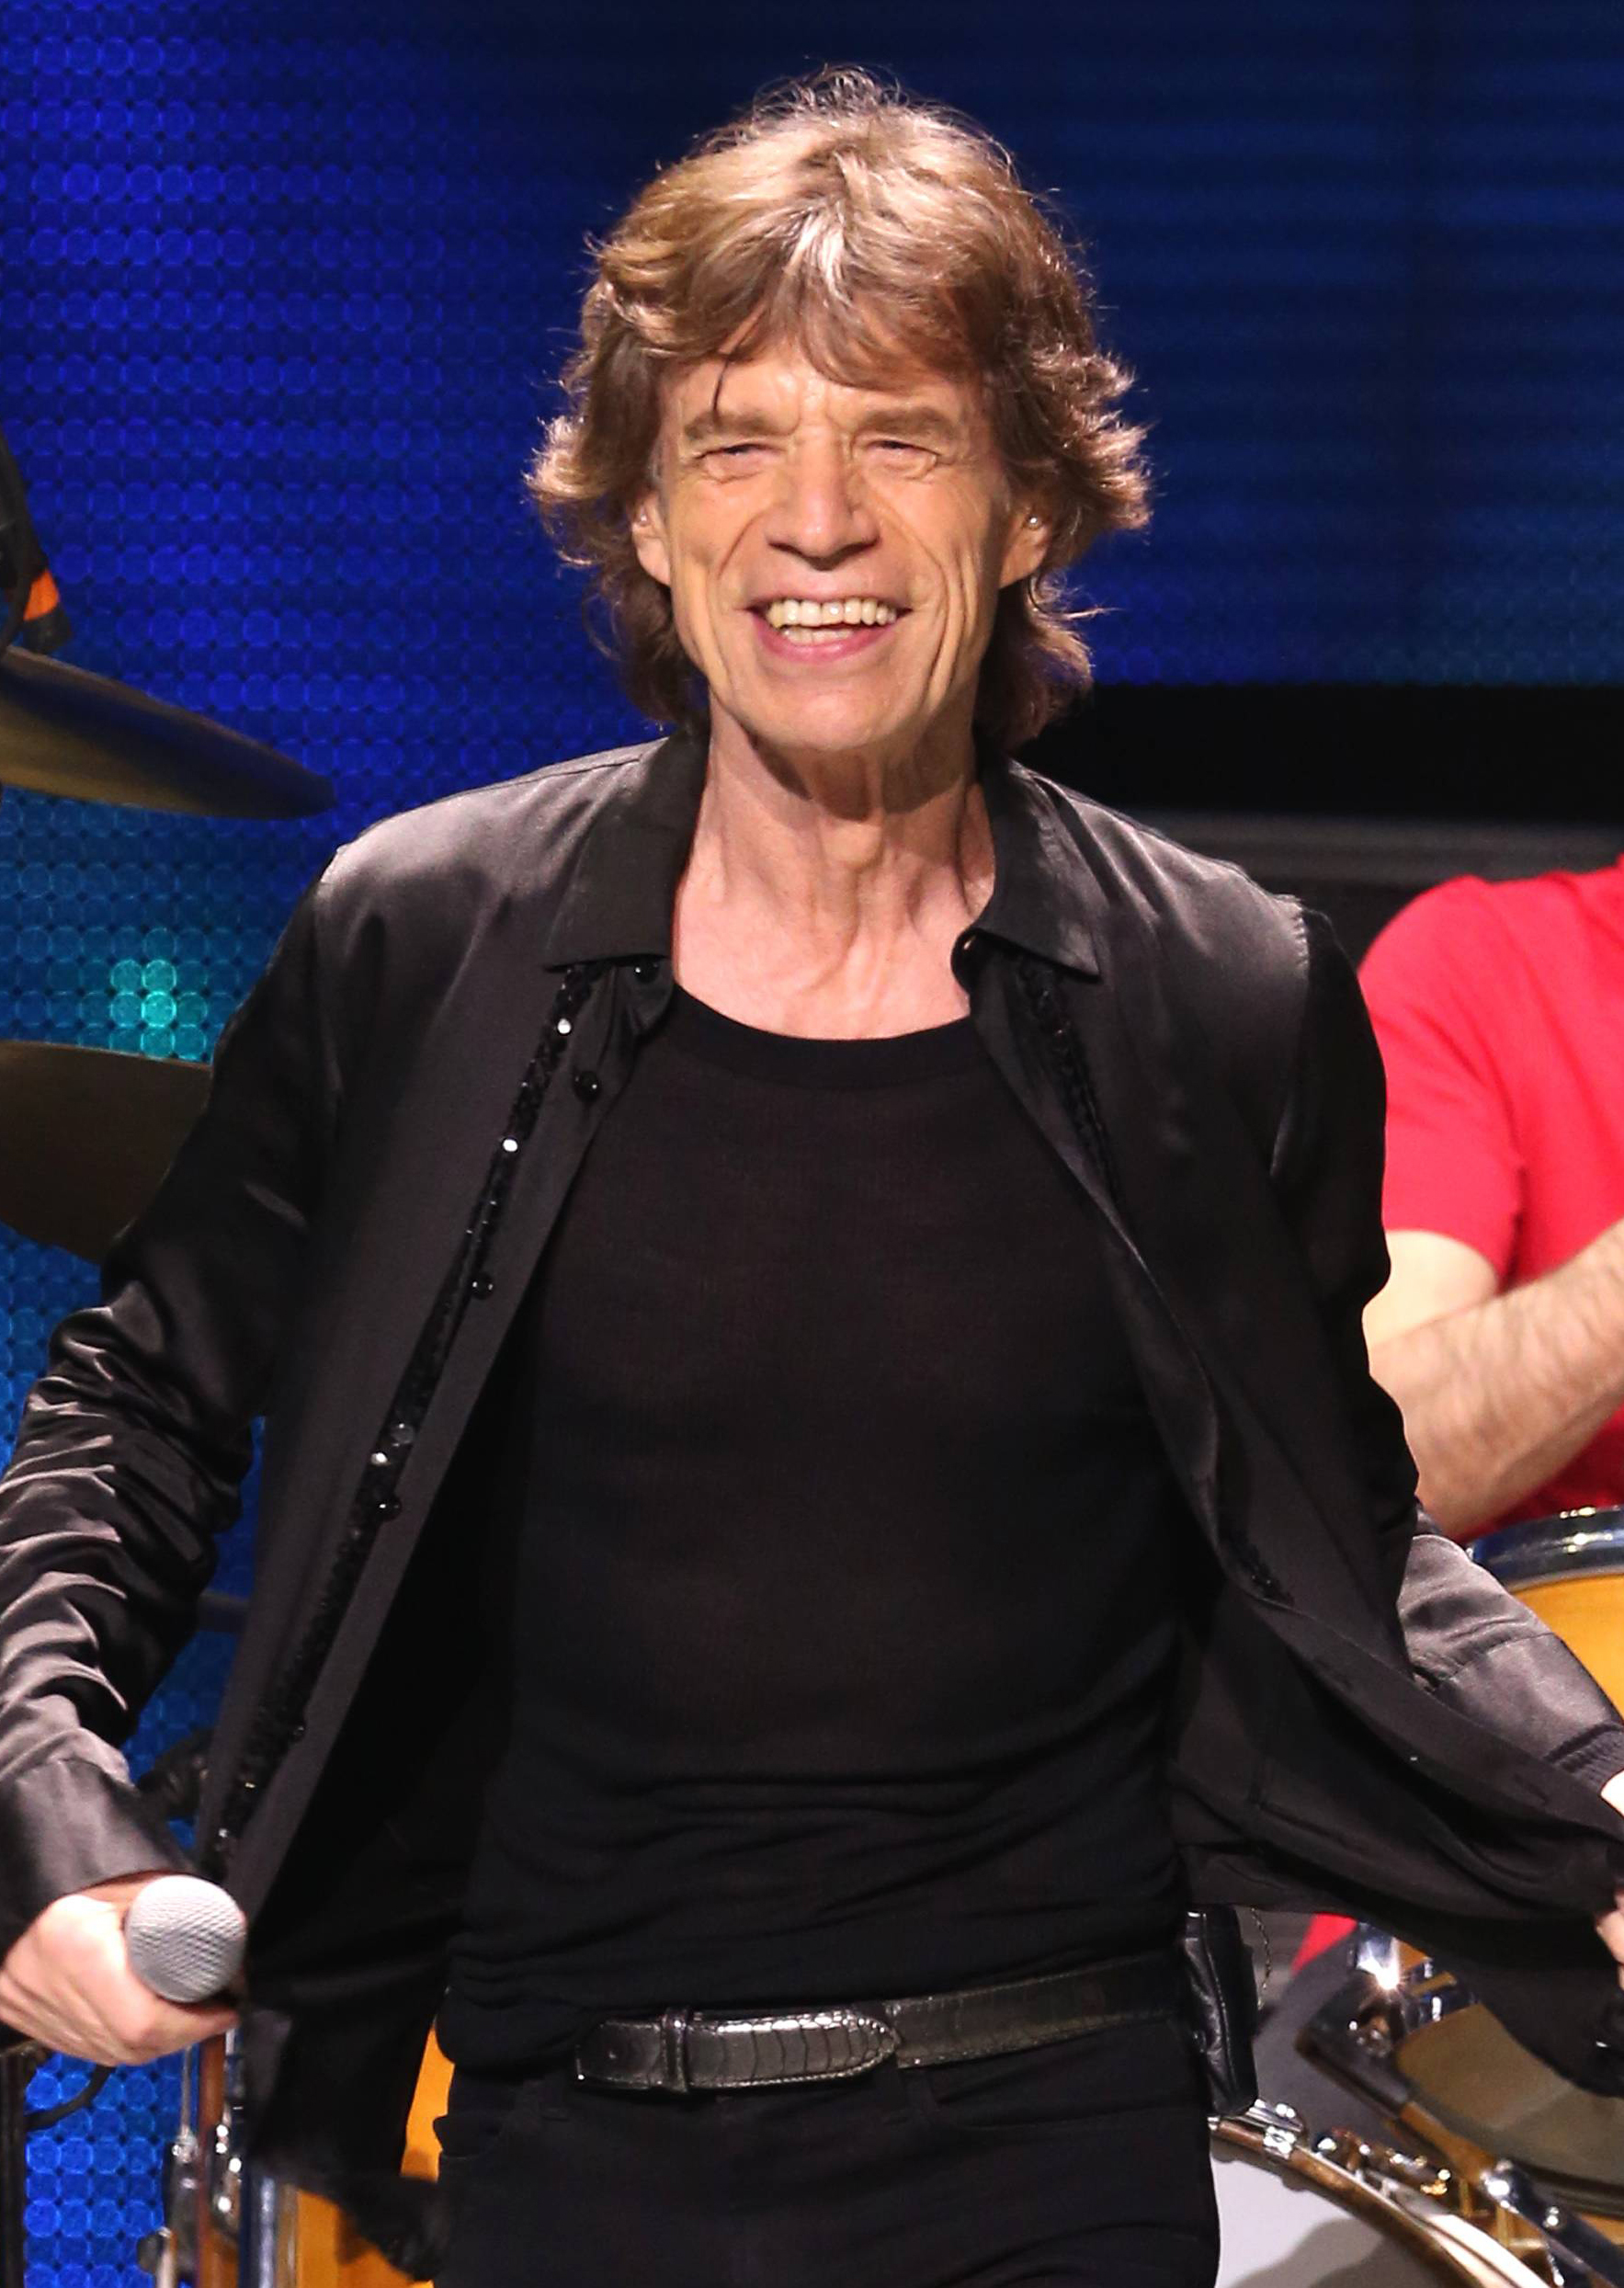 Mick Jagger 'wont be playing happy families' with girlfriend, baby